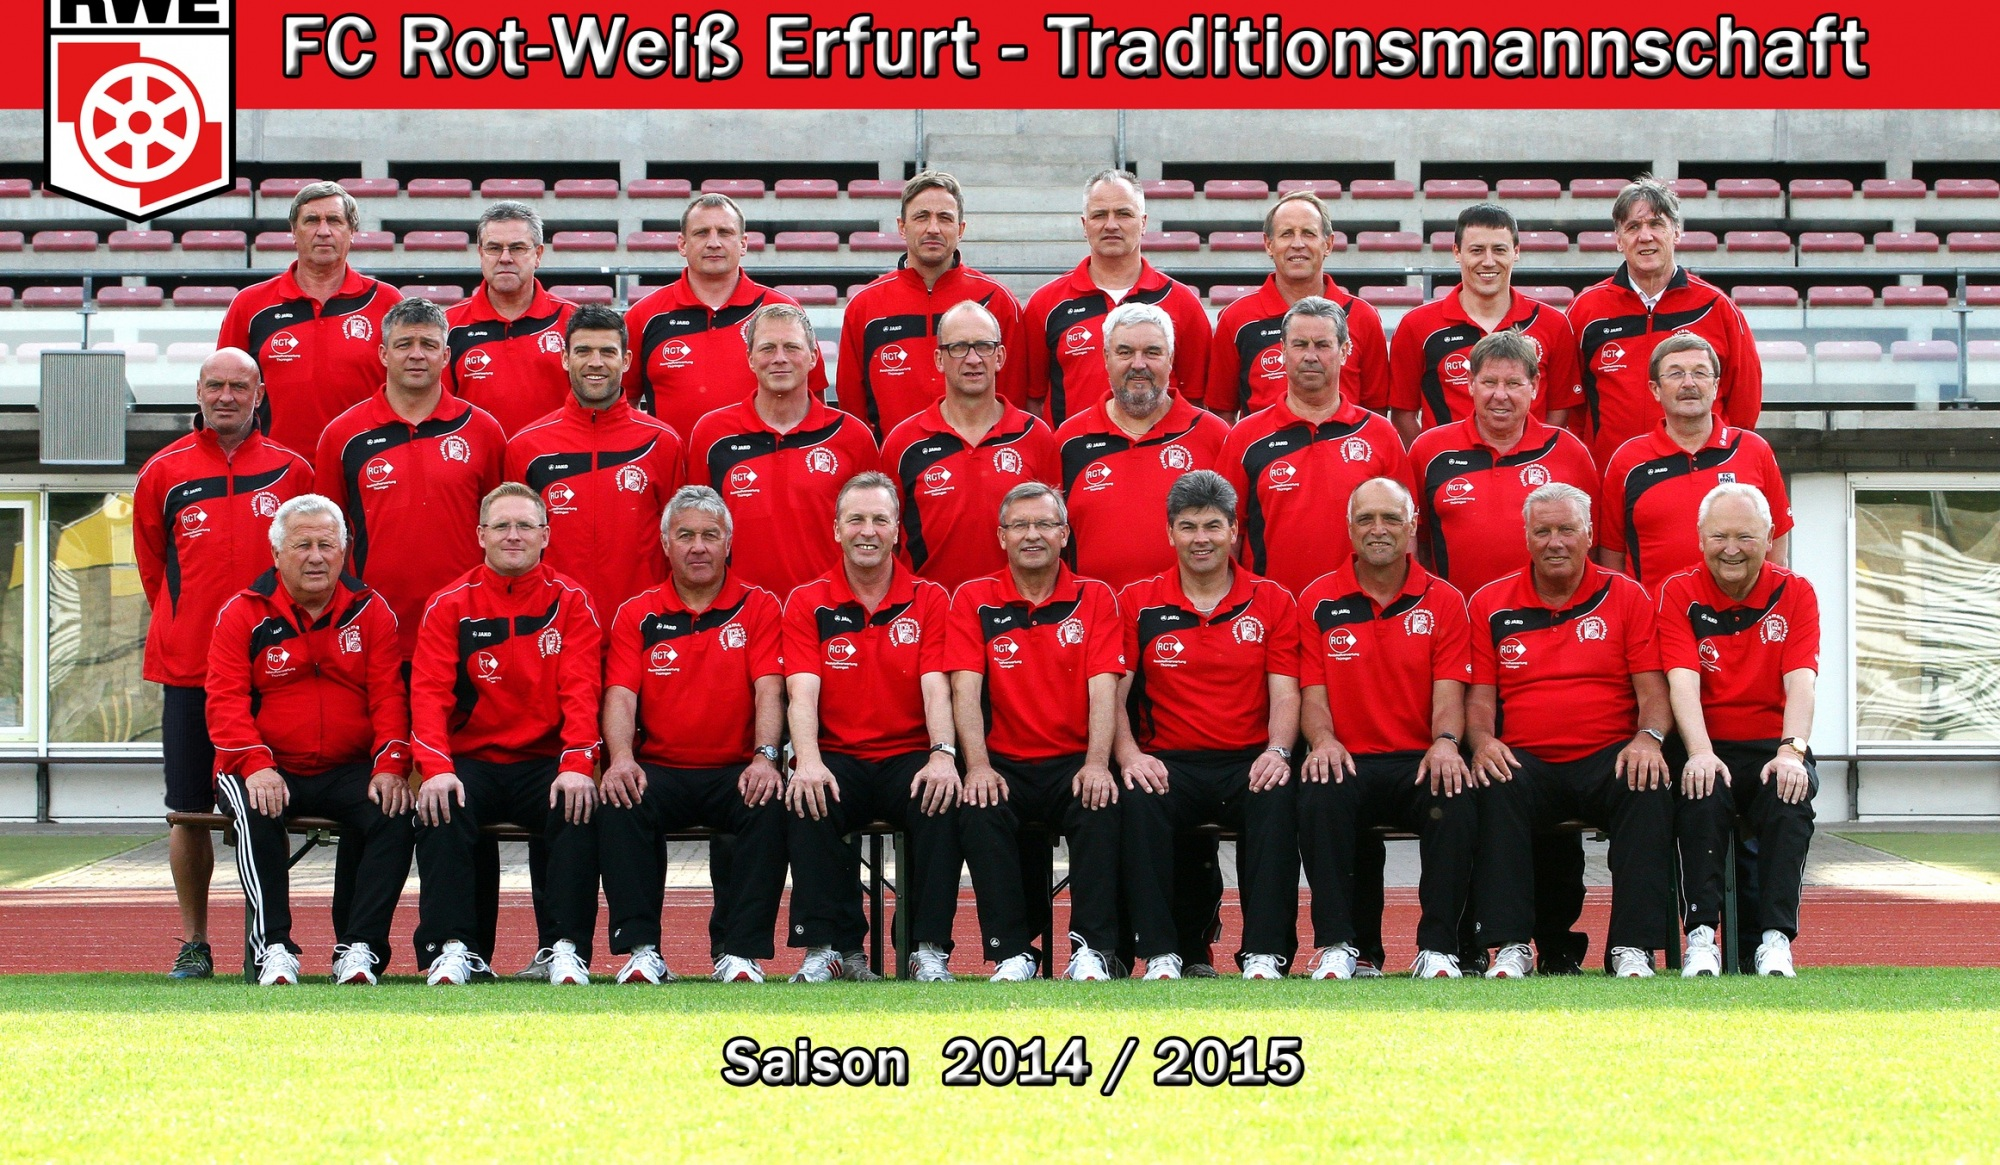 Traditionsmannschaft